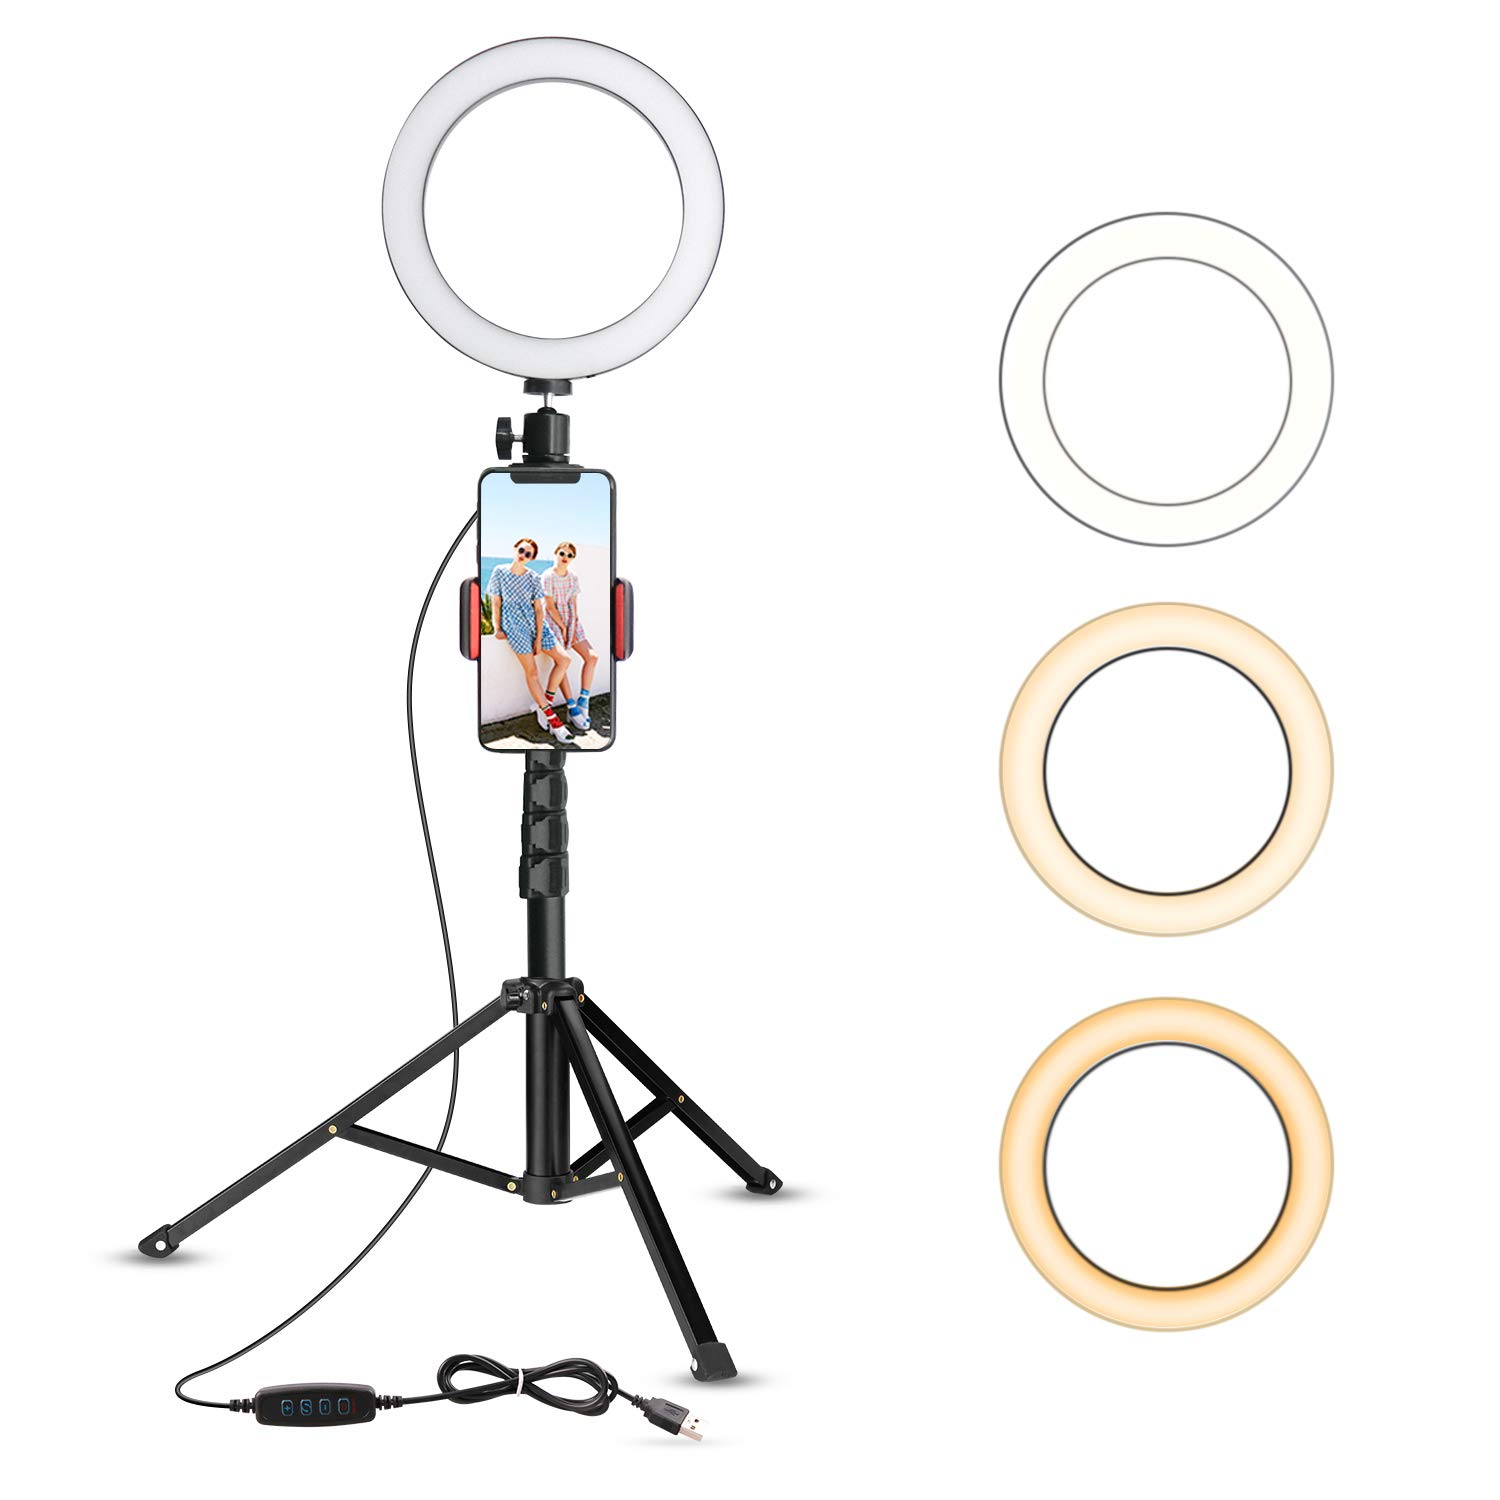 8'' Selfie Ring Light with Tripod Stand & Cell Phone Holder for Live Stream/Makeup, UBeesize Mini Led Camera Ringlight for YouTube Video/Photography Compatible with iPhone Xs Max XR Android (Upgraded)